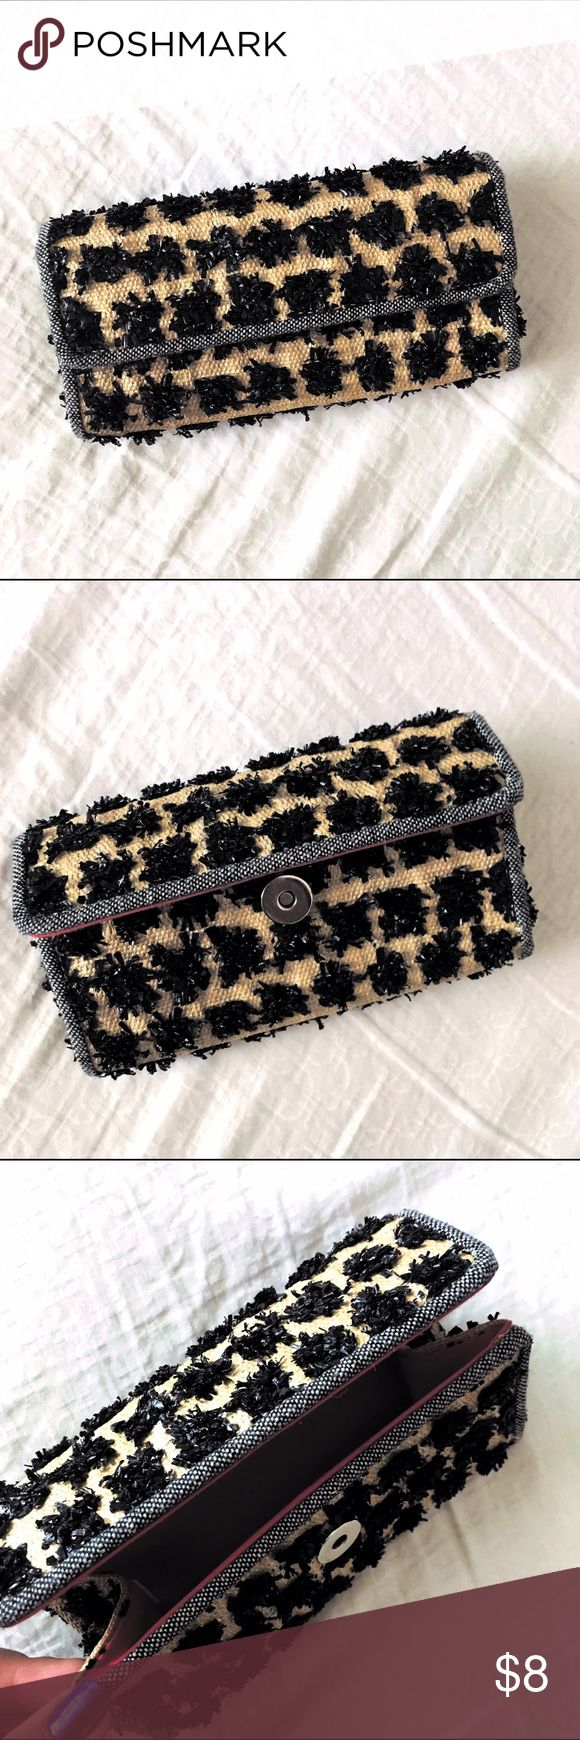 Leopard Makeup Brush Clutch Barely used and in excellent condition. Magnetic closure. Bags Cosmetic Bags & Cases